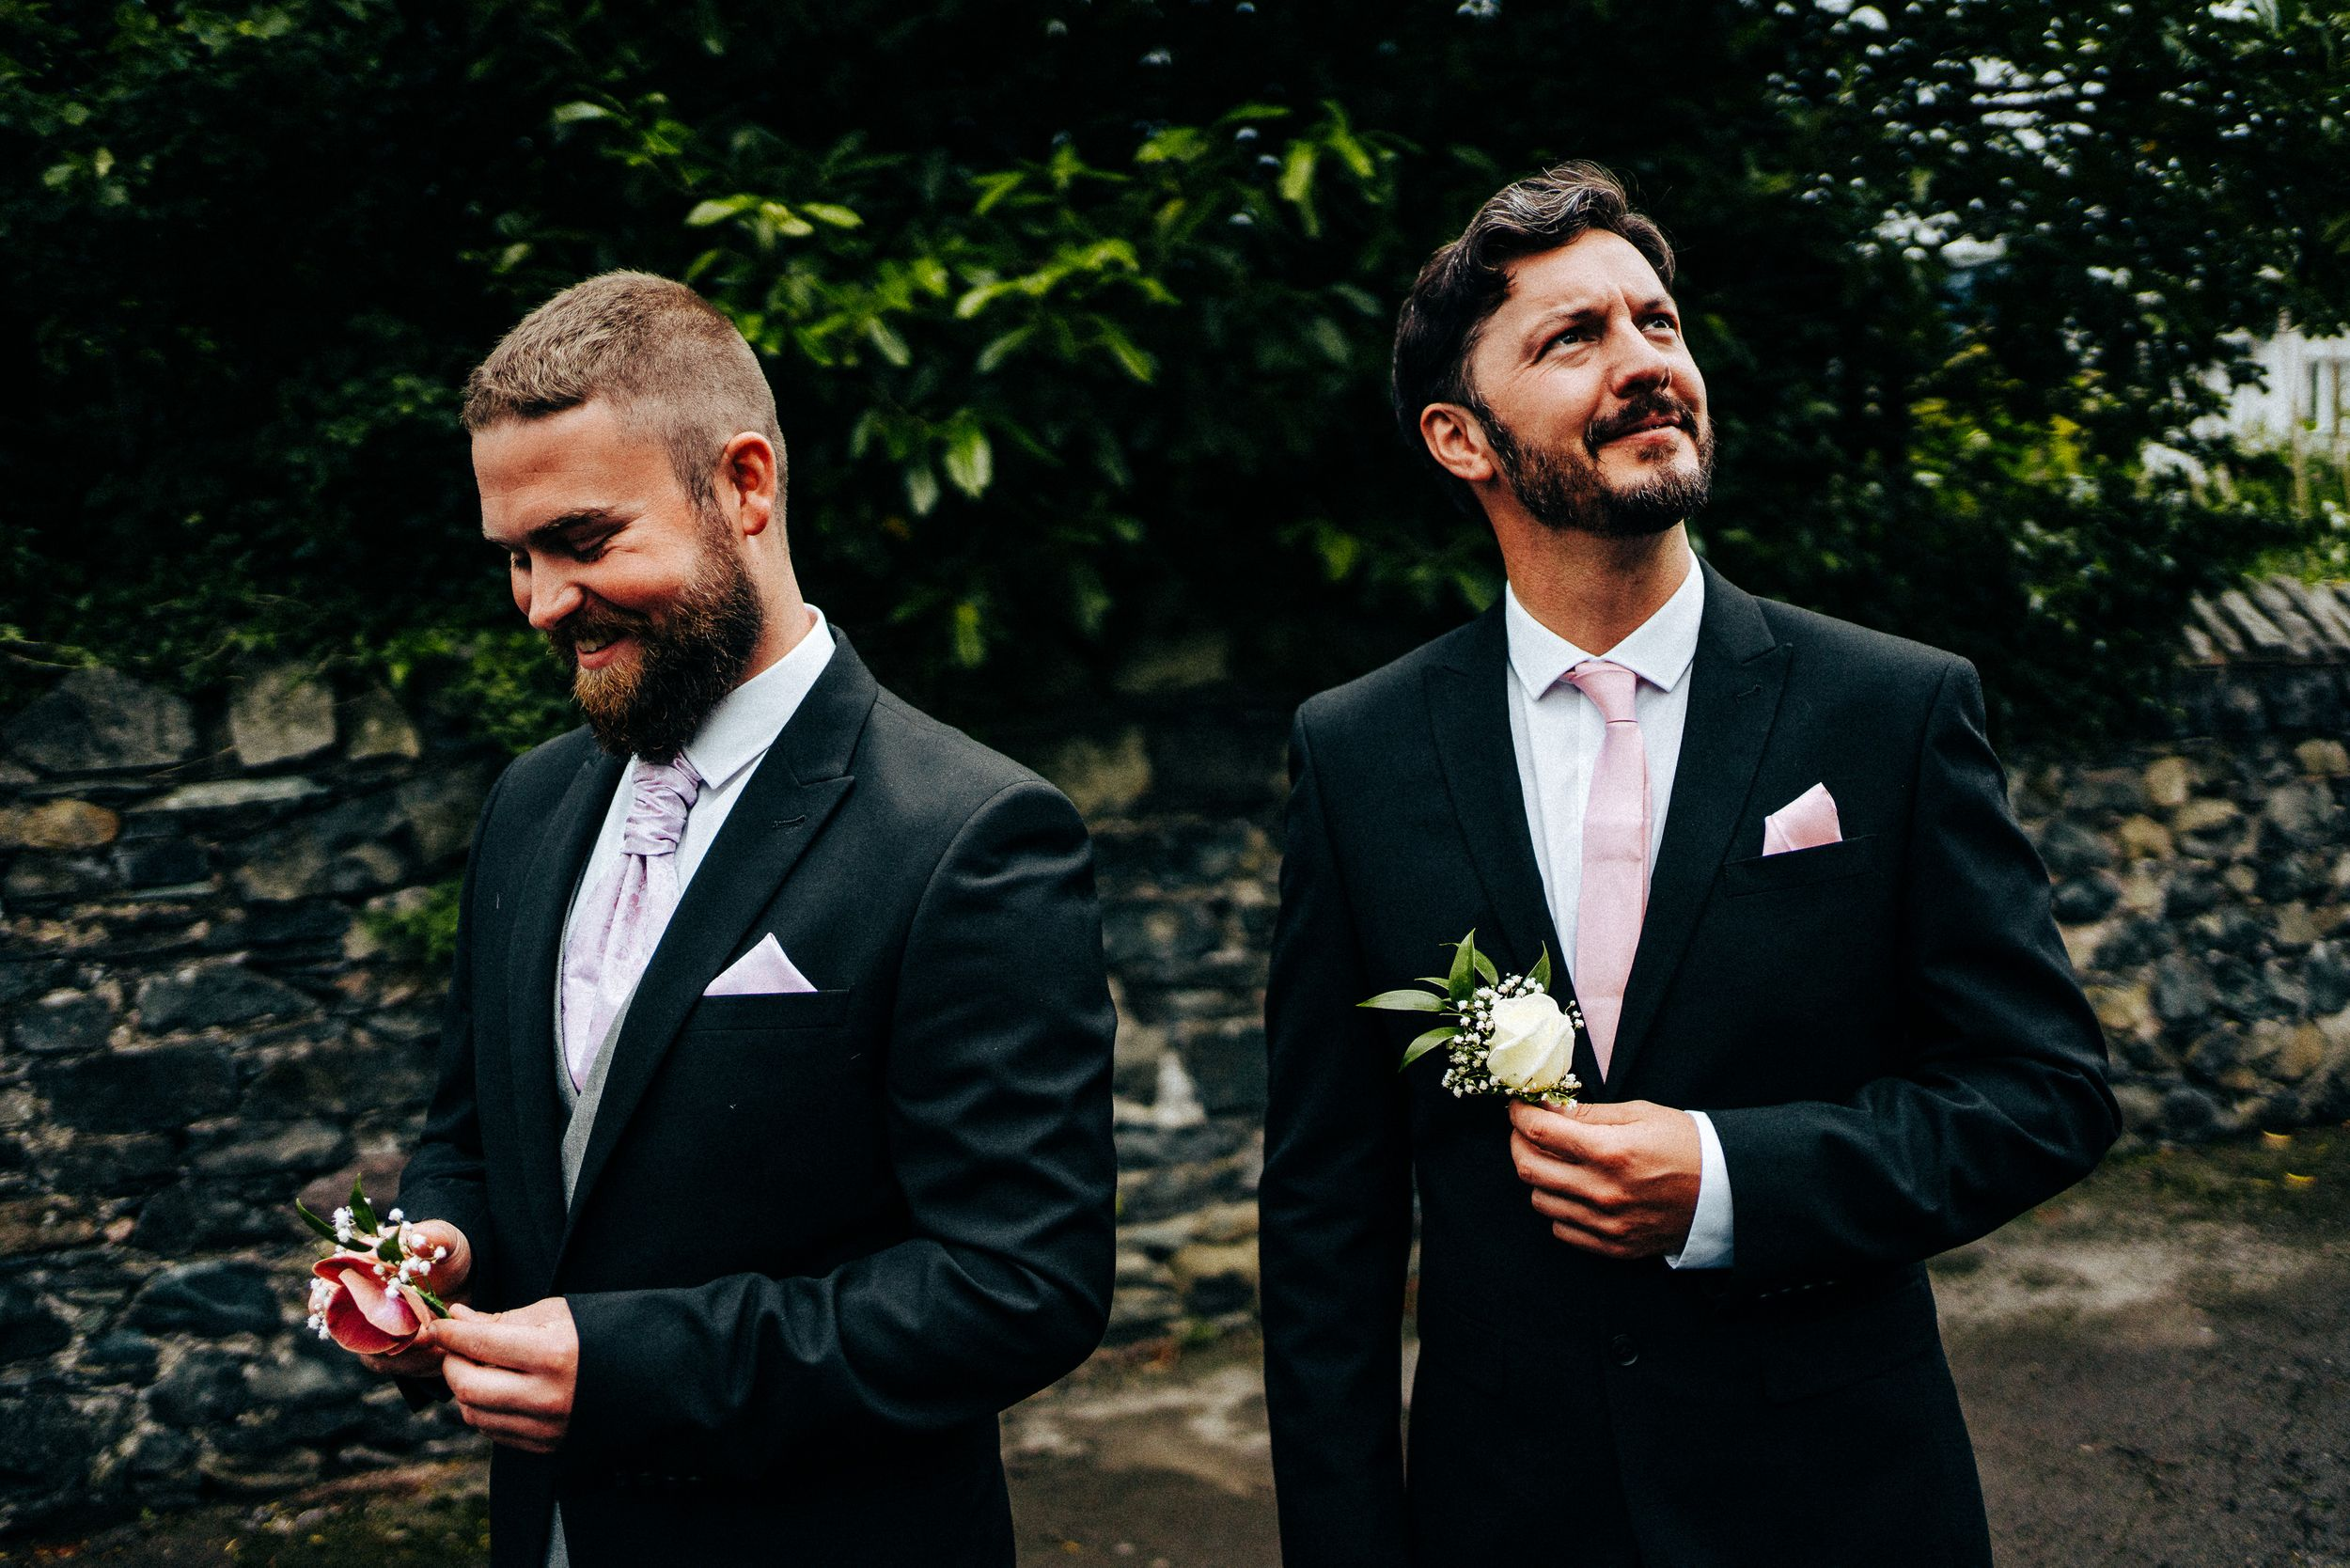 Keswick Wedding Photography - Grooms with flowers